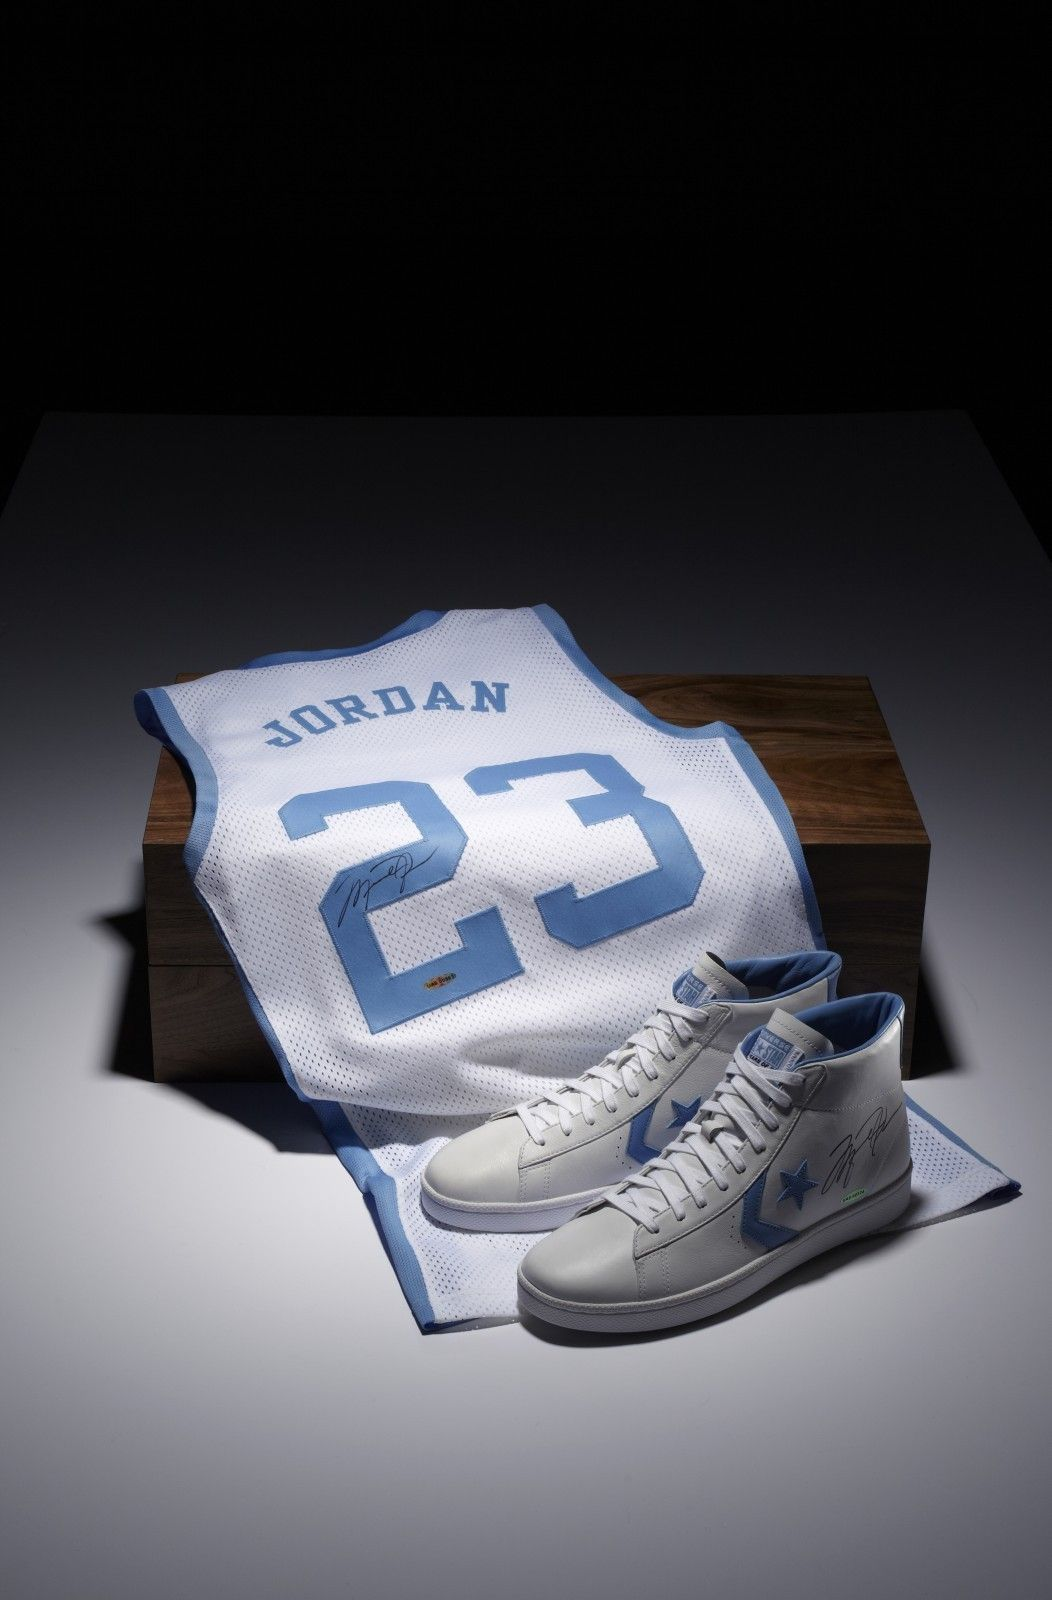 4ccba4c1b7a9 Michael Jordan X Converse Limited Edition Signed Commemorative Pack ...